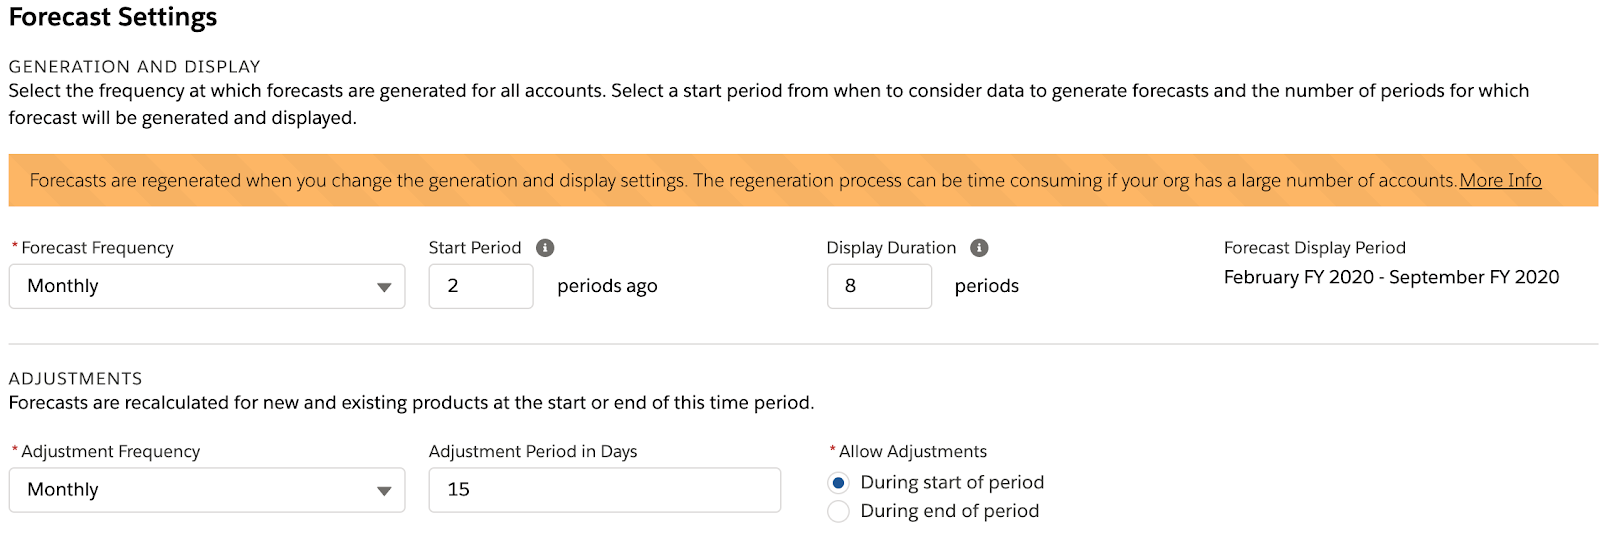 Manufacturing Cloud Forecast Settings